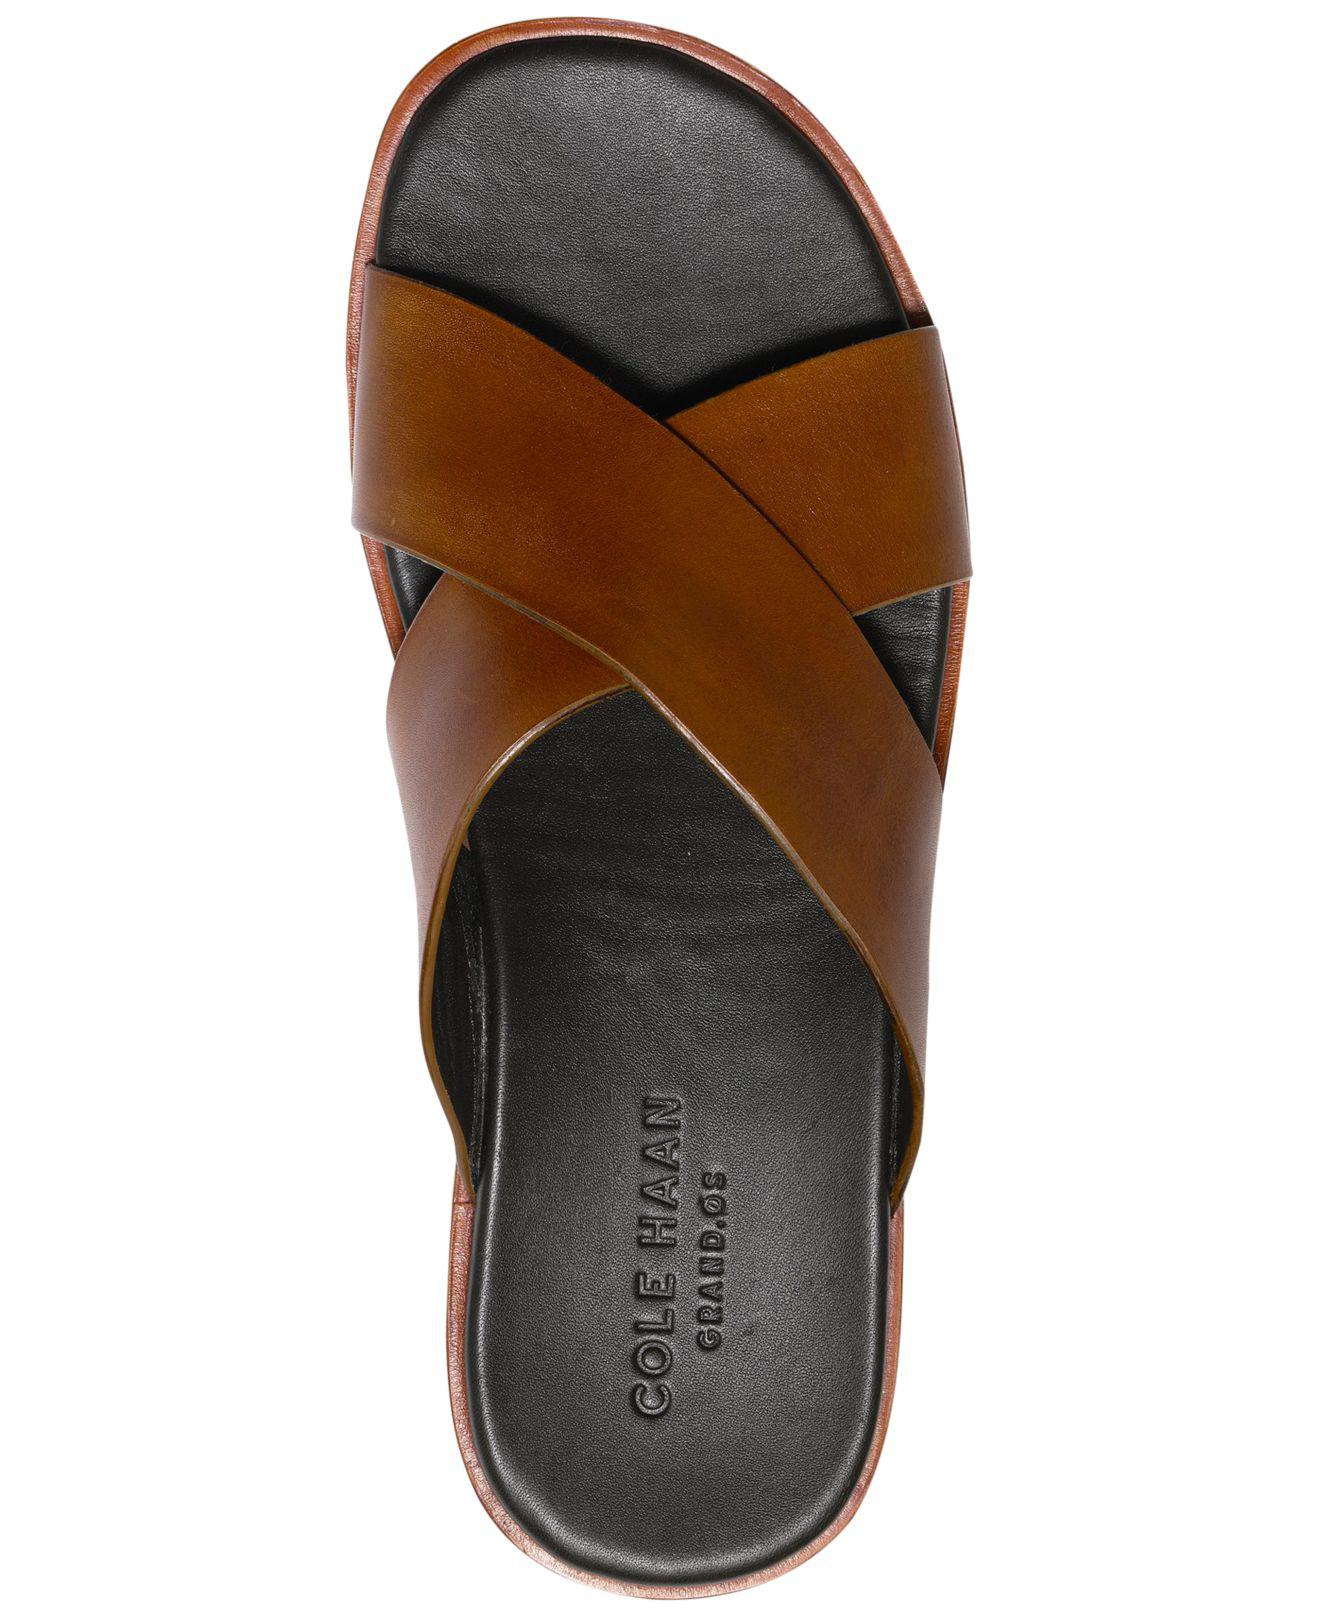 15d9dd88d Cole Haan - Brown Goldwyn Criss Cross Sandals for Men - Lyst. View  fullscreen